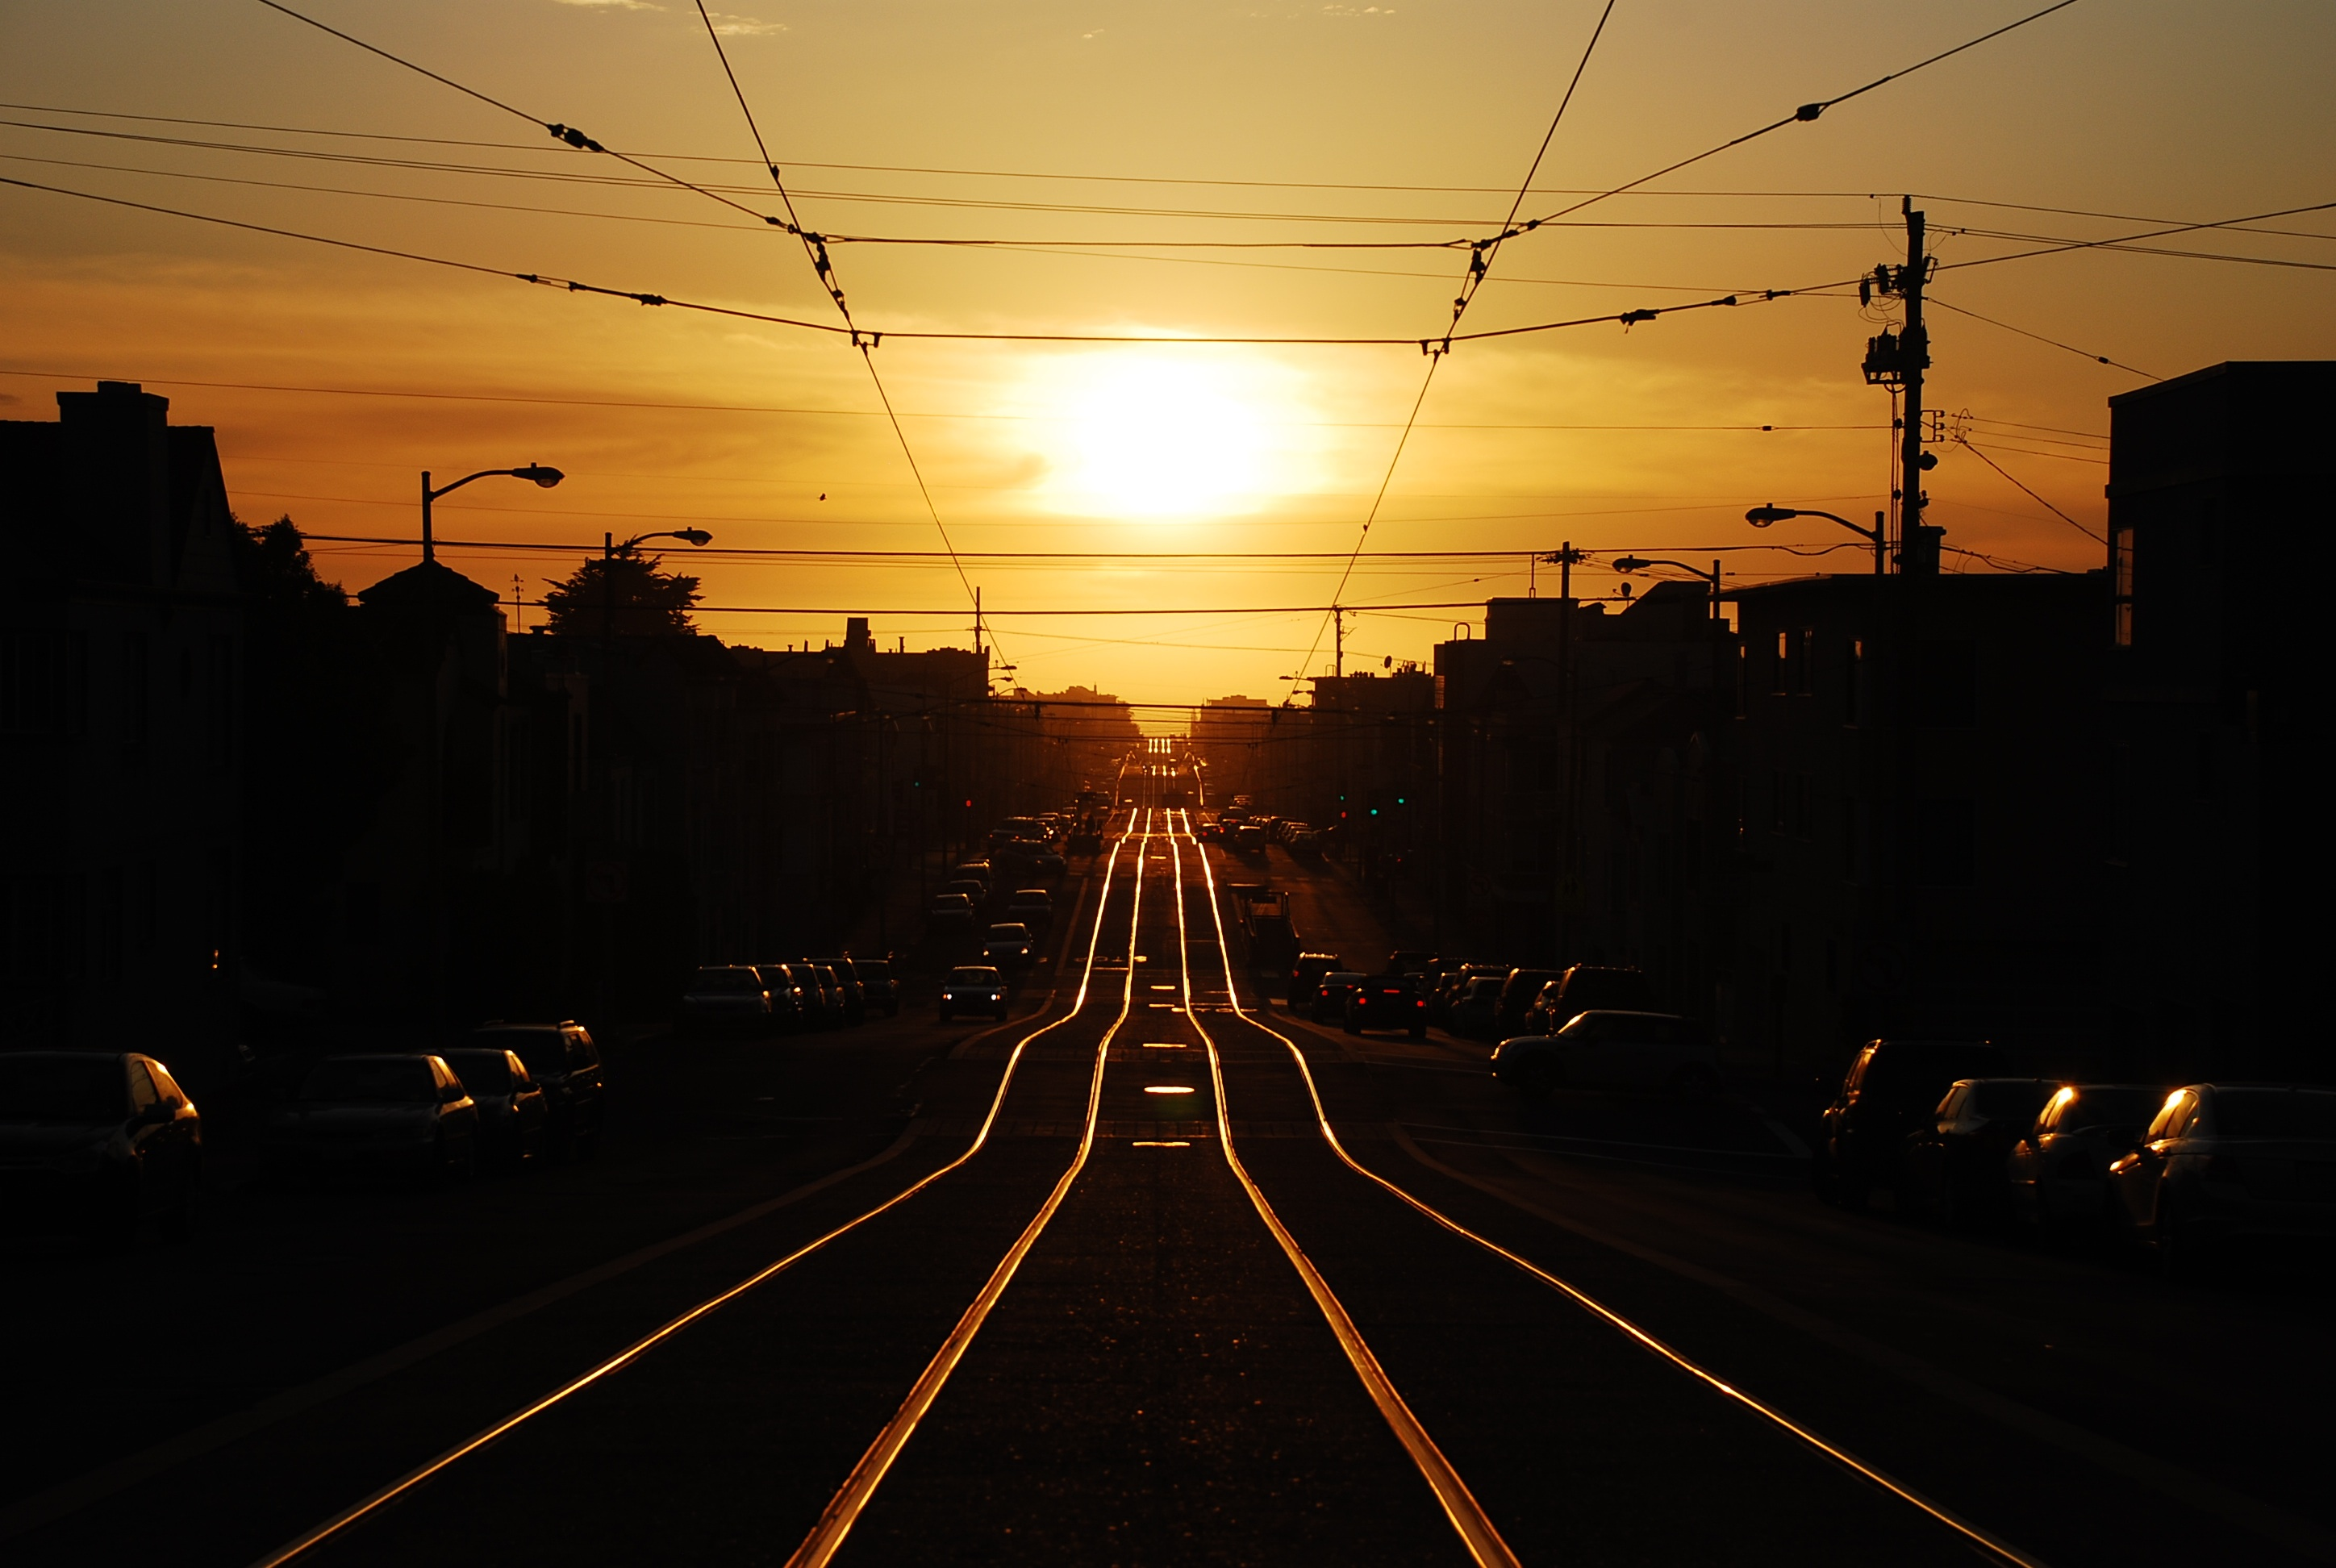 Tracks into the sunset photo